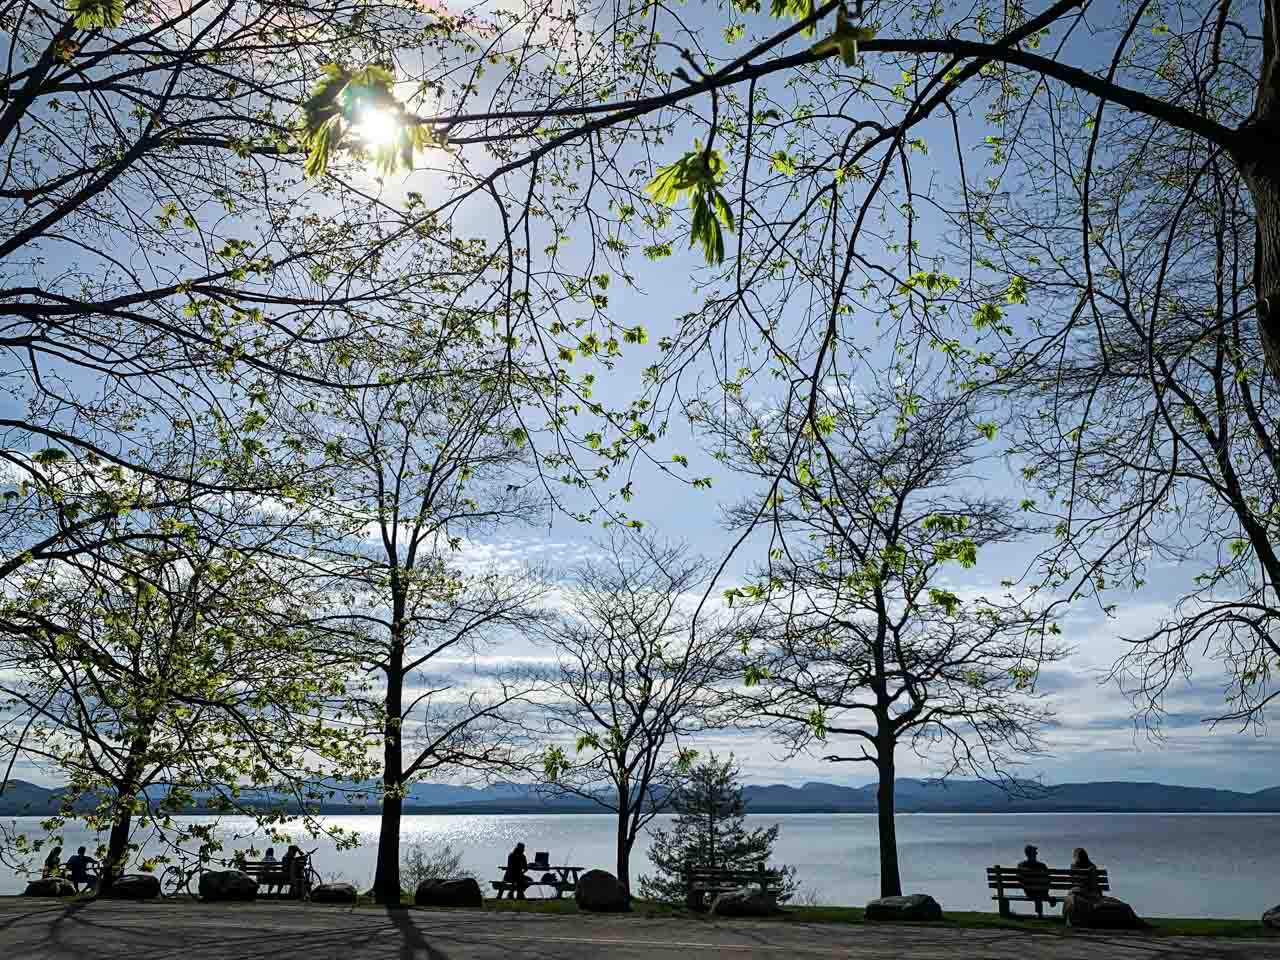 light green leaves just coming out on the trees in the foreground lake with mountains in distance silhouettes of people siting on benches